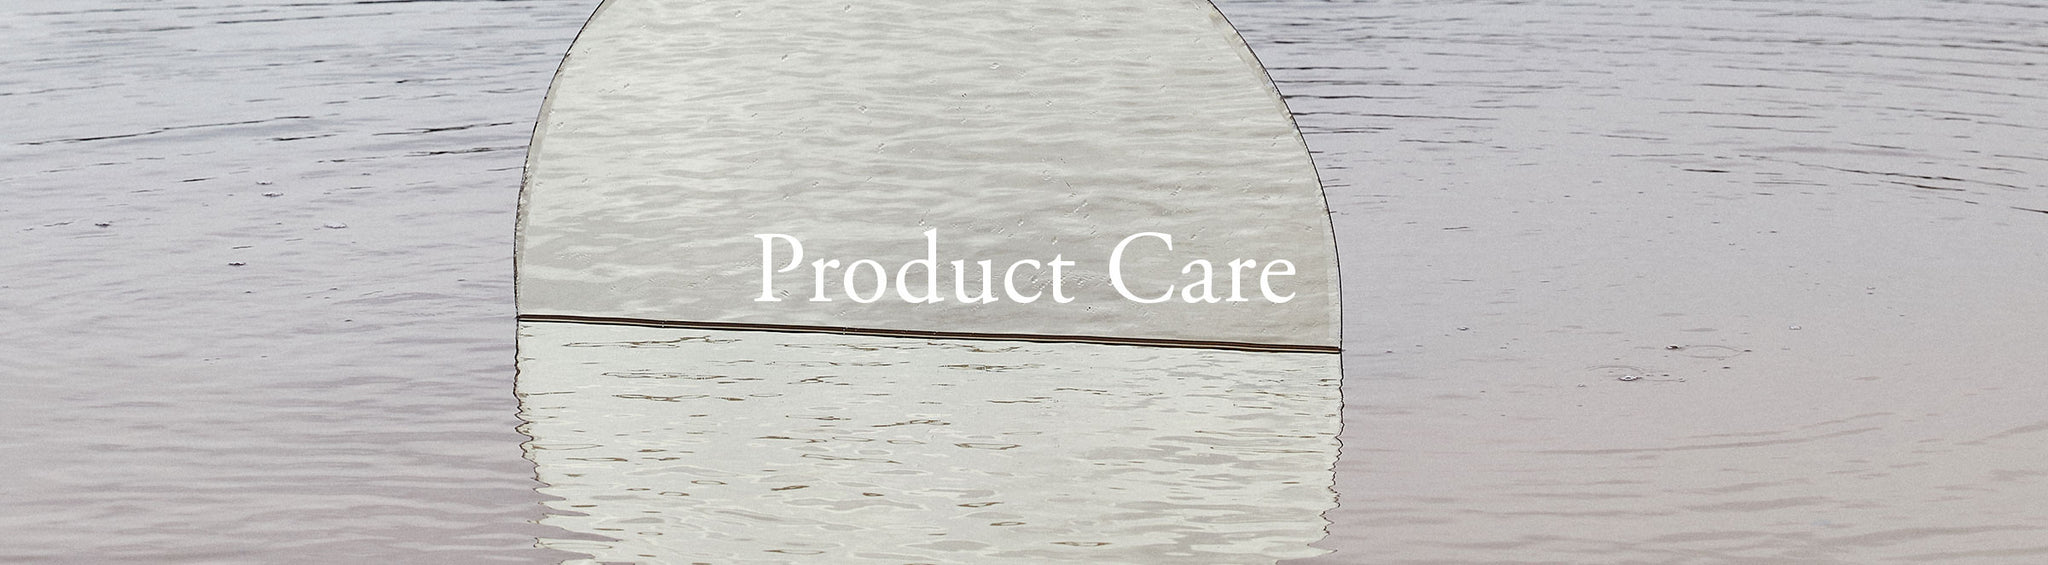 Product Care Header